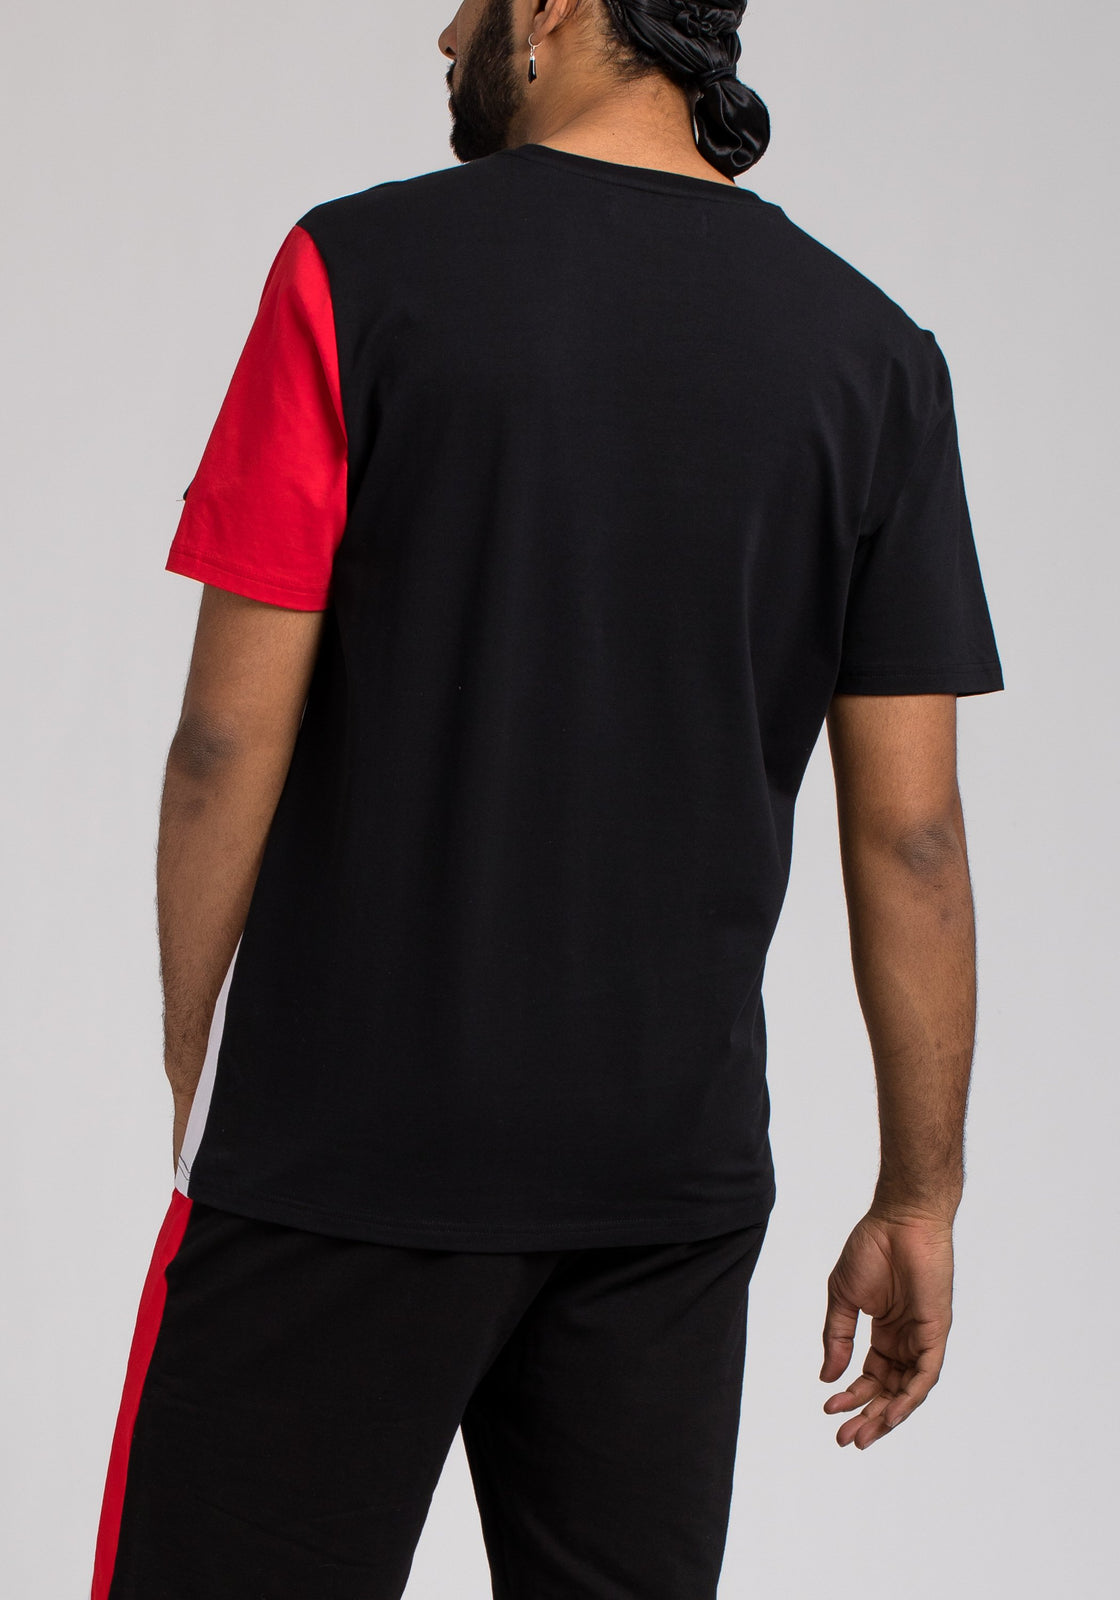 BPYRAMID COLOR BLOCK TEE - Color: Black